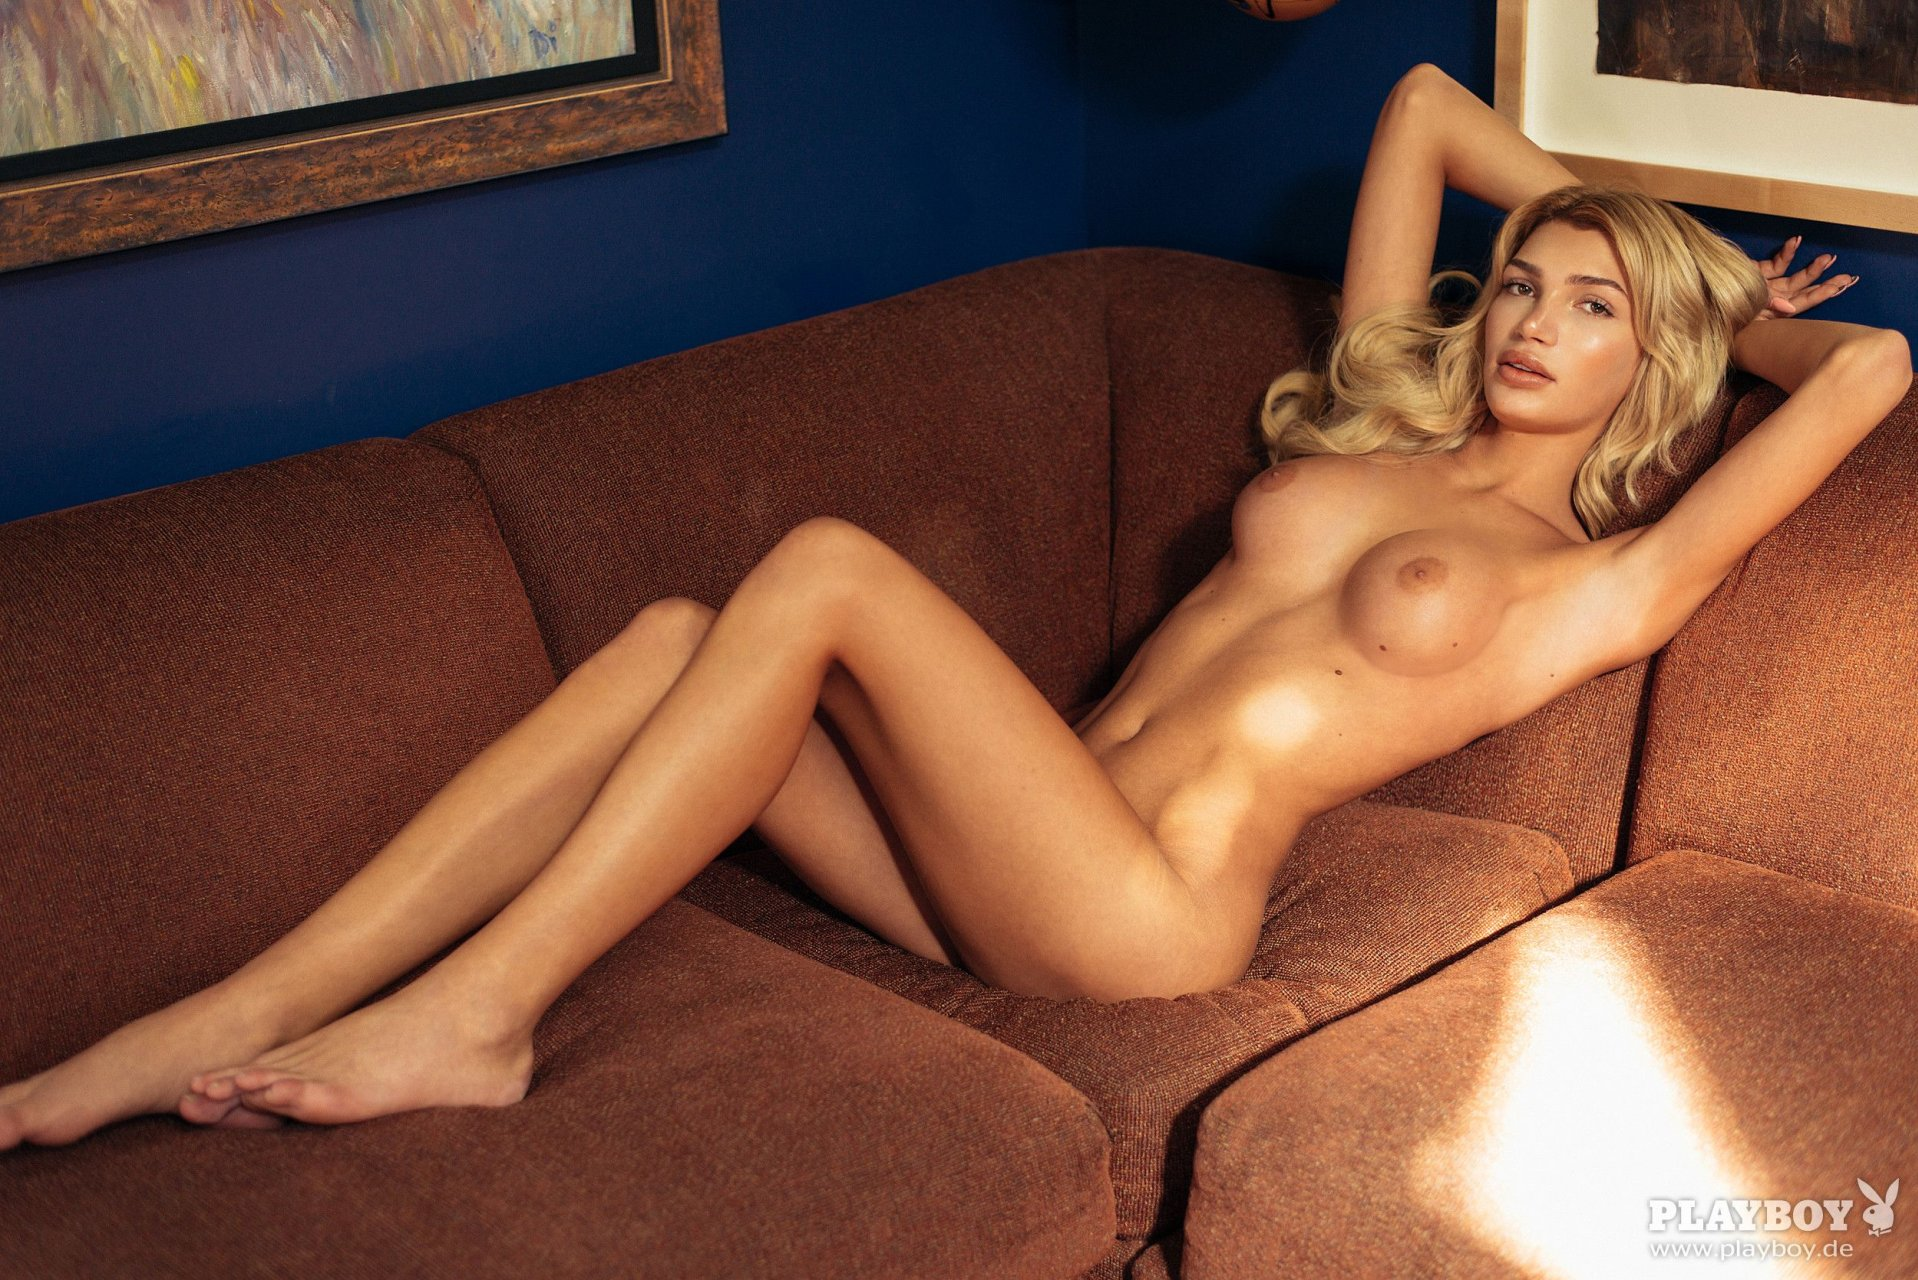 from Ian transgender nude pictures